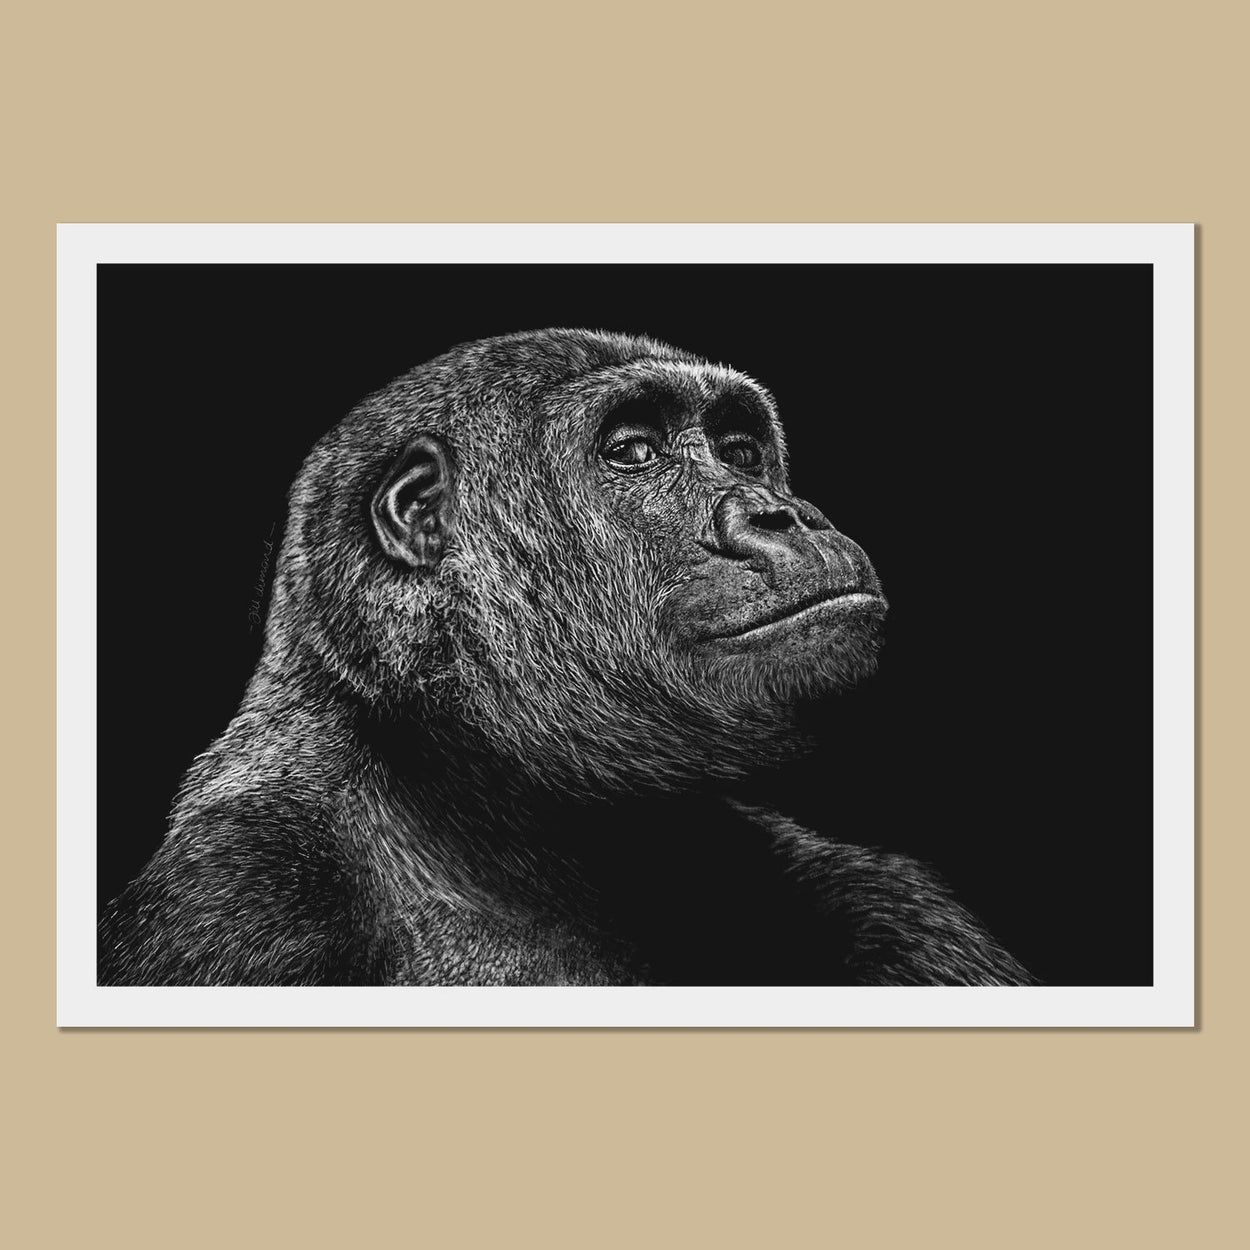 Gorilla Art Prints - The Thriving Wild